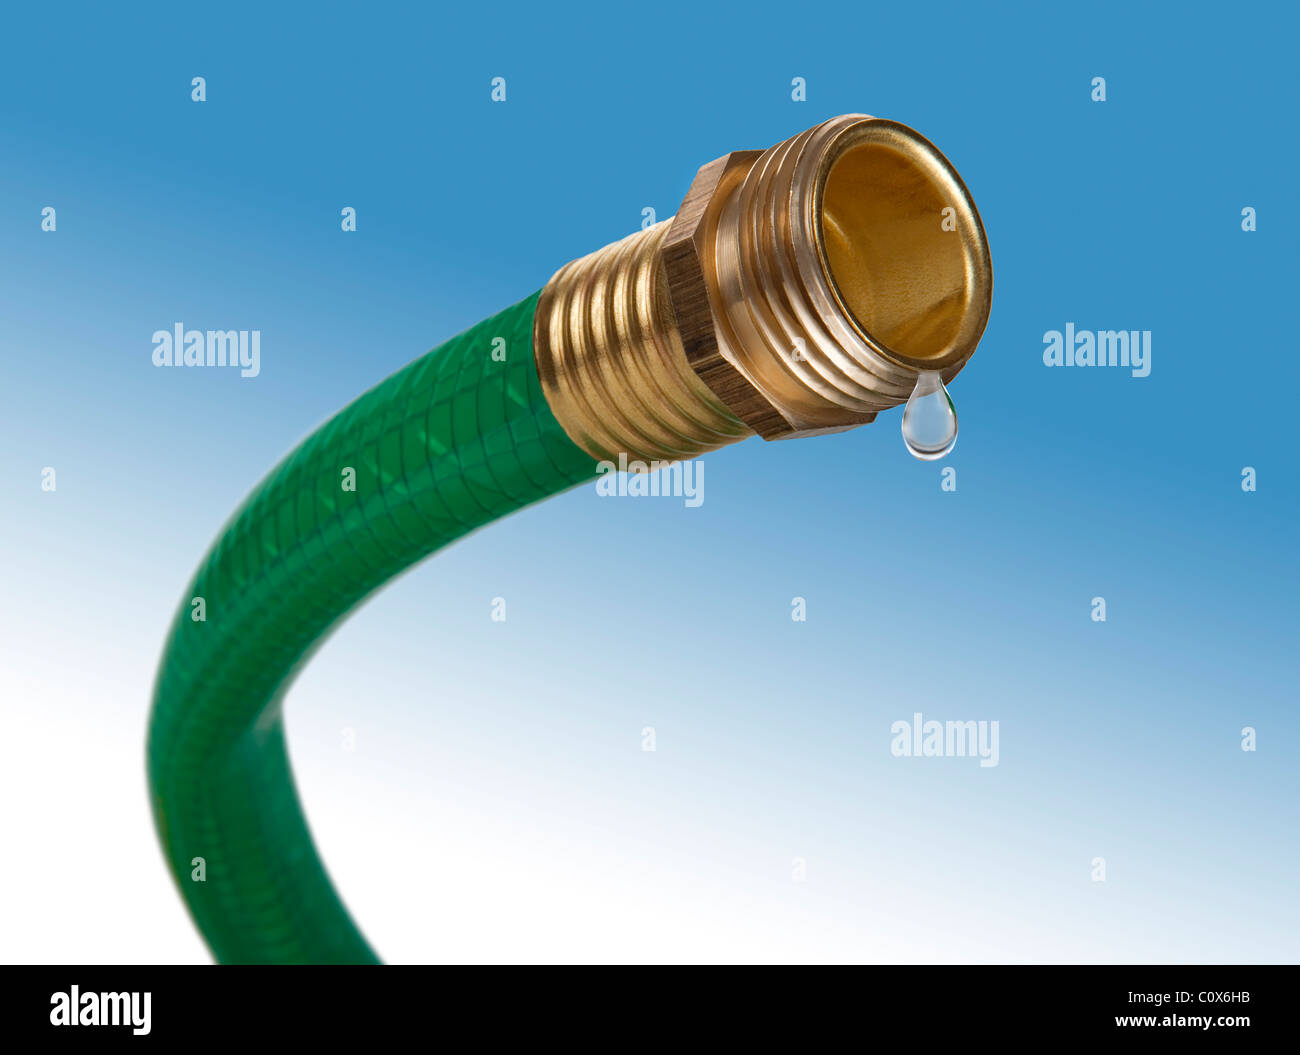 A green garden hose with only one drop of water coming out. - Stock Image